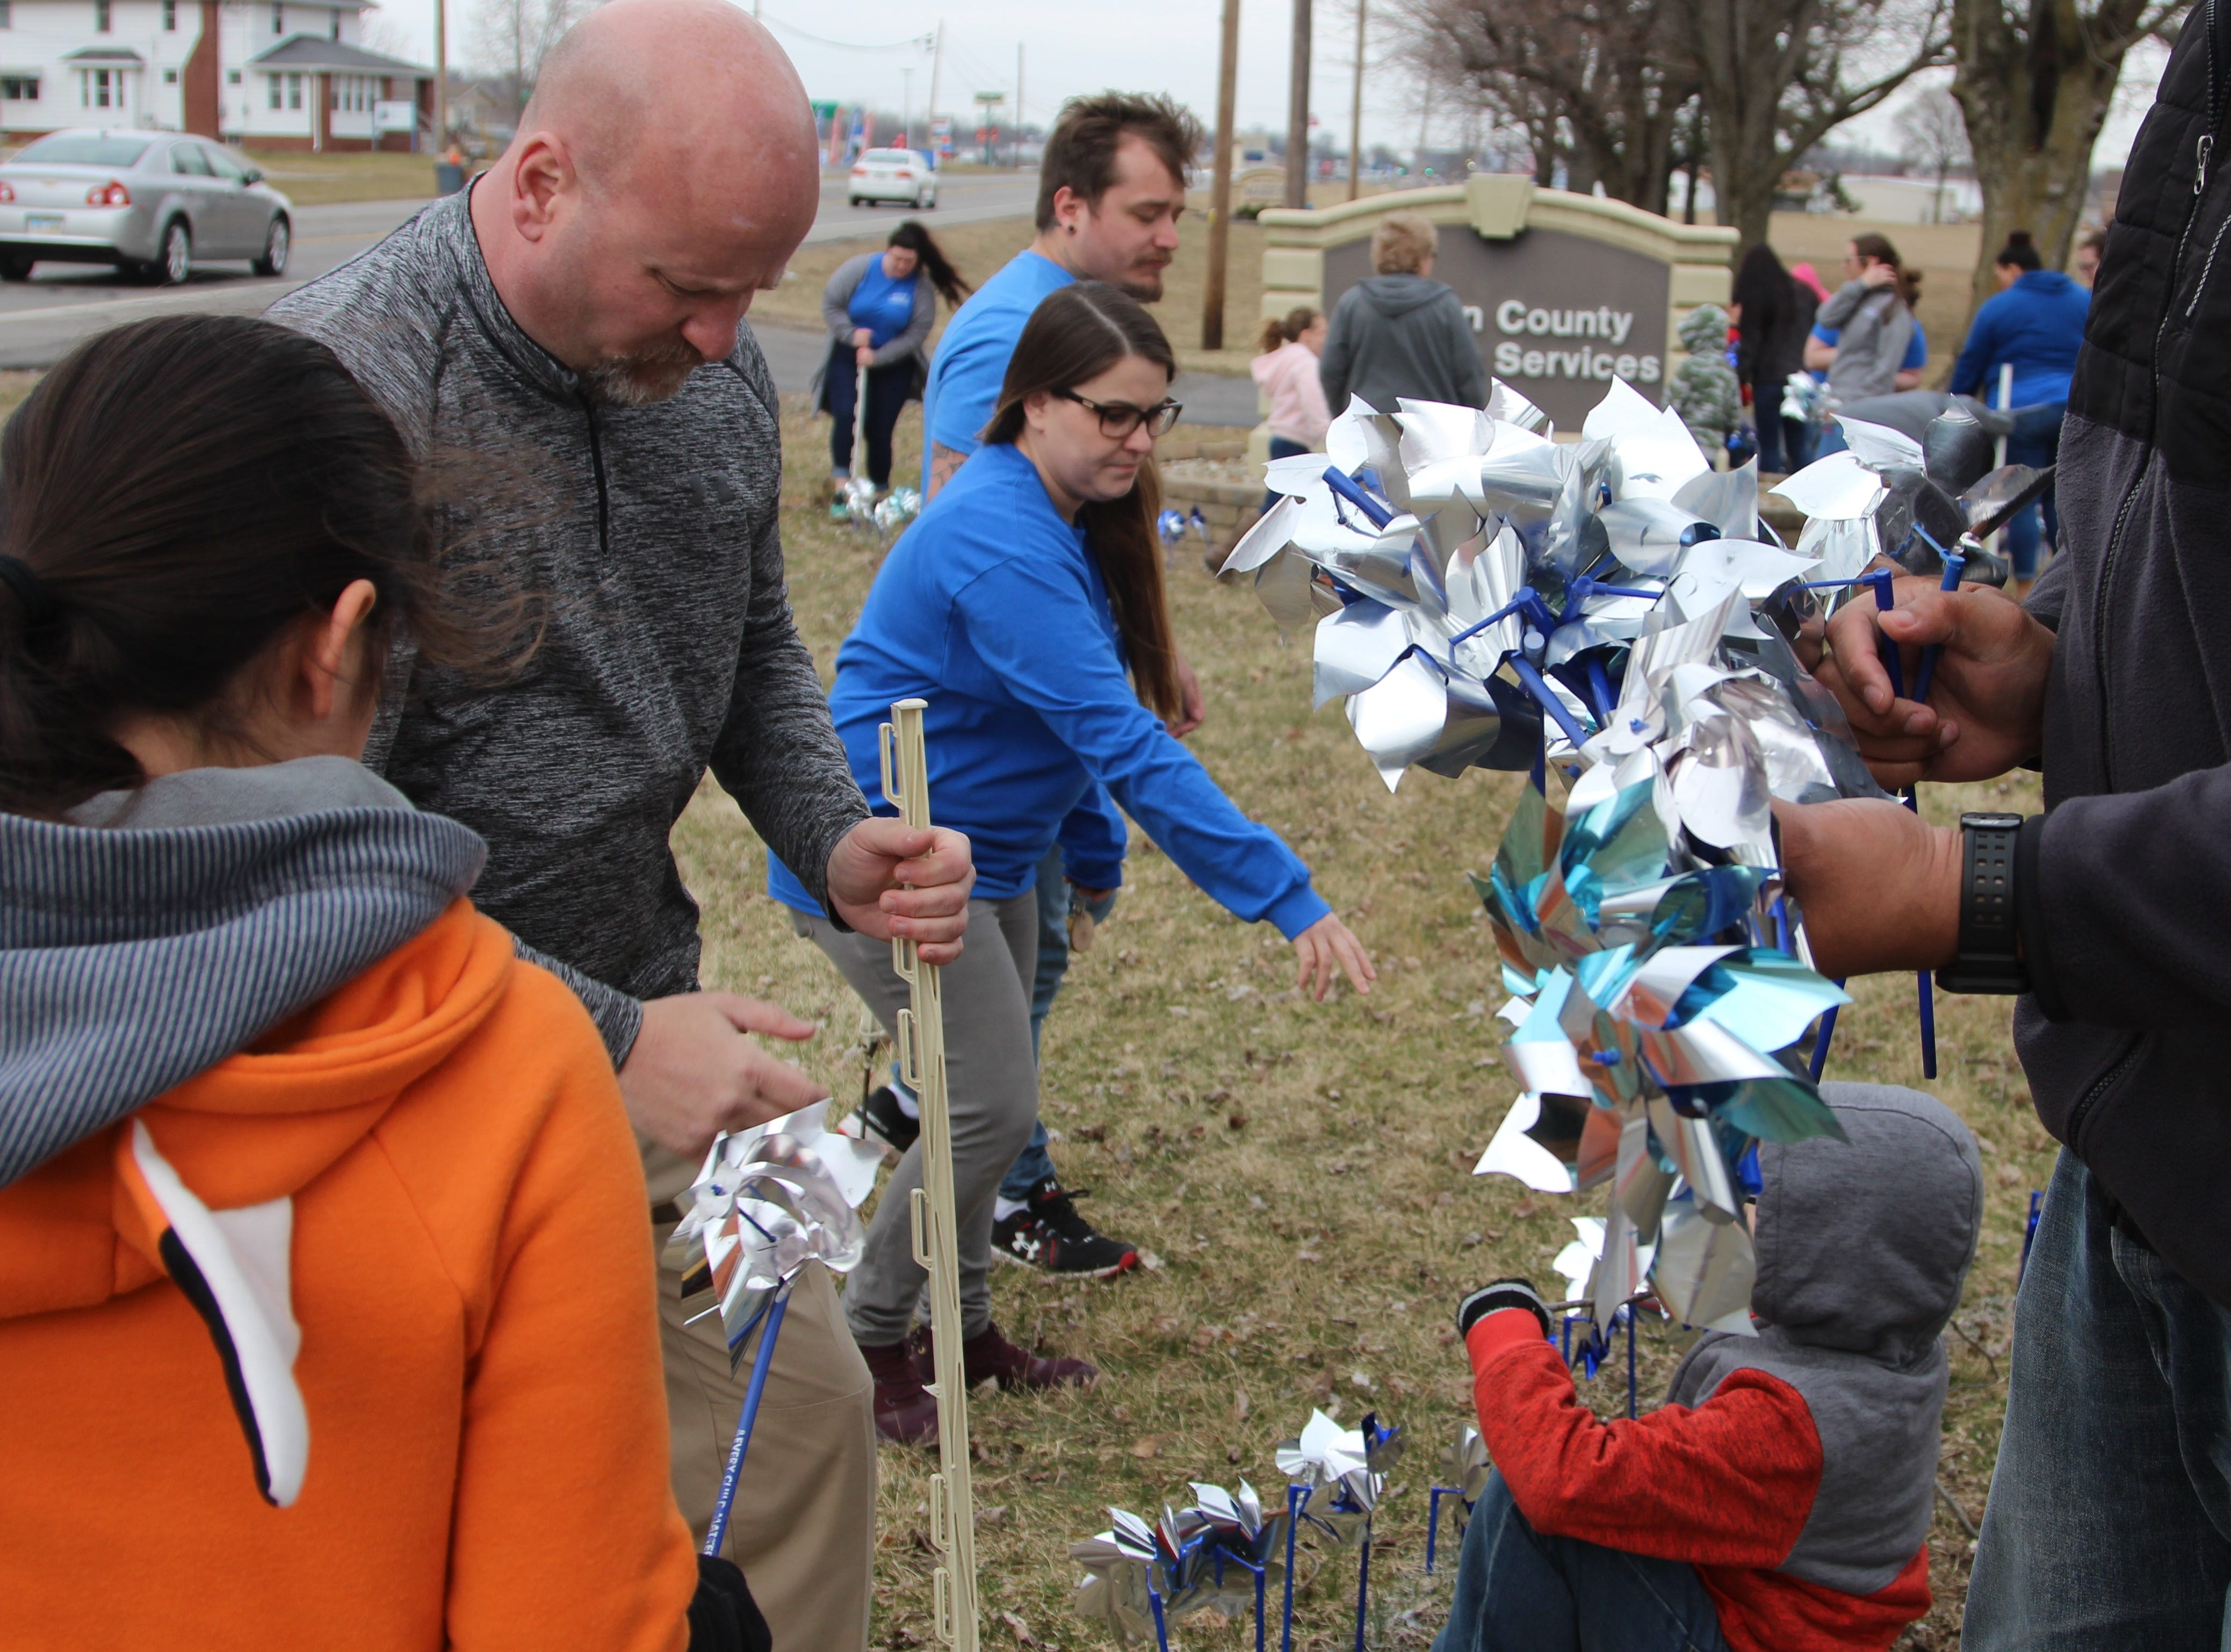 Volunteers and members of Marion County Children Services planted them Thursday afternoon as part of Child Abuse Awareness Month that starts in April.